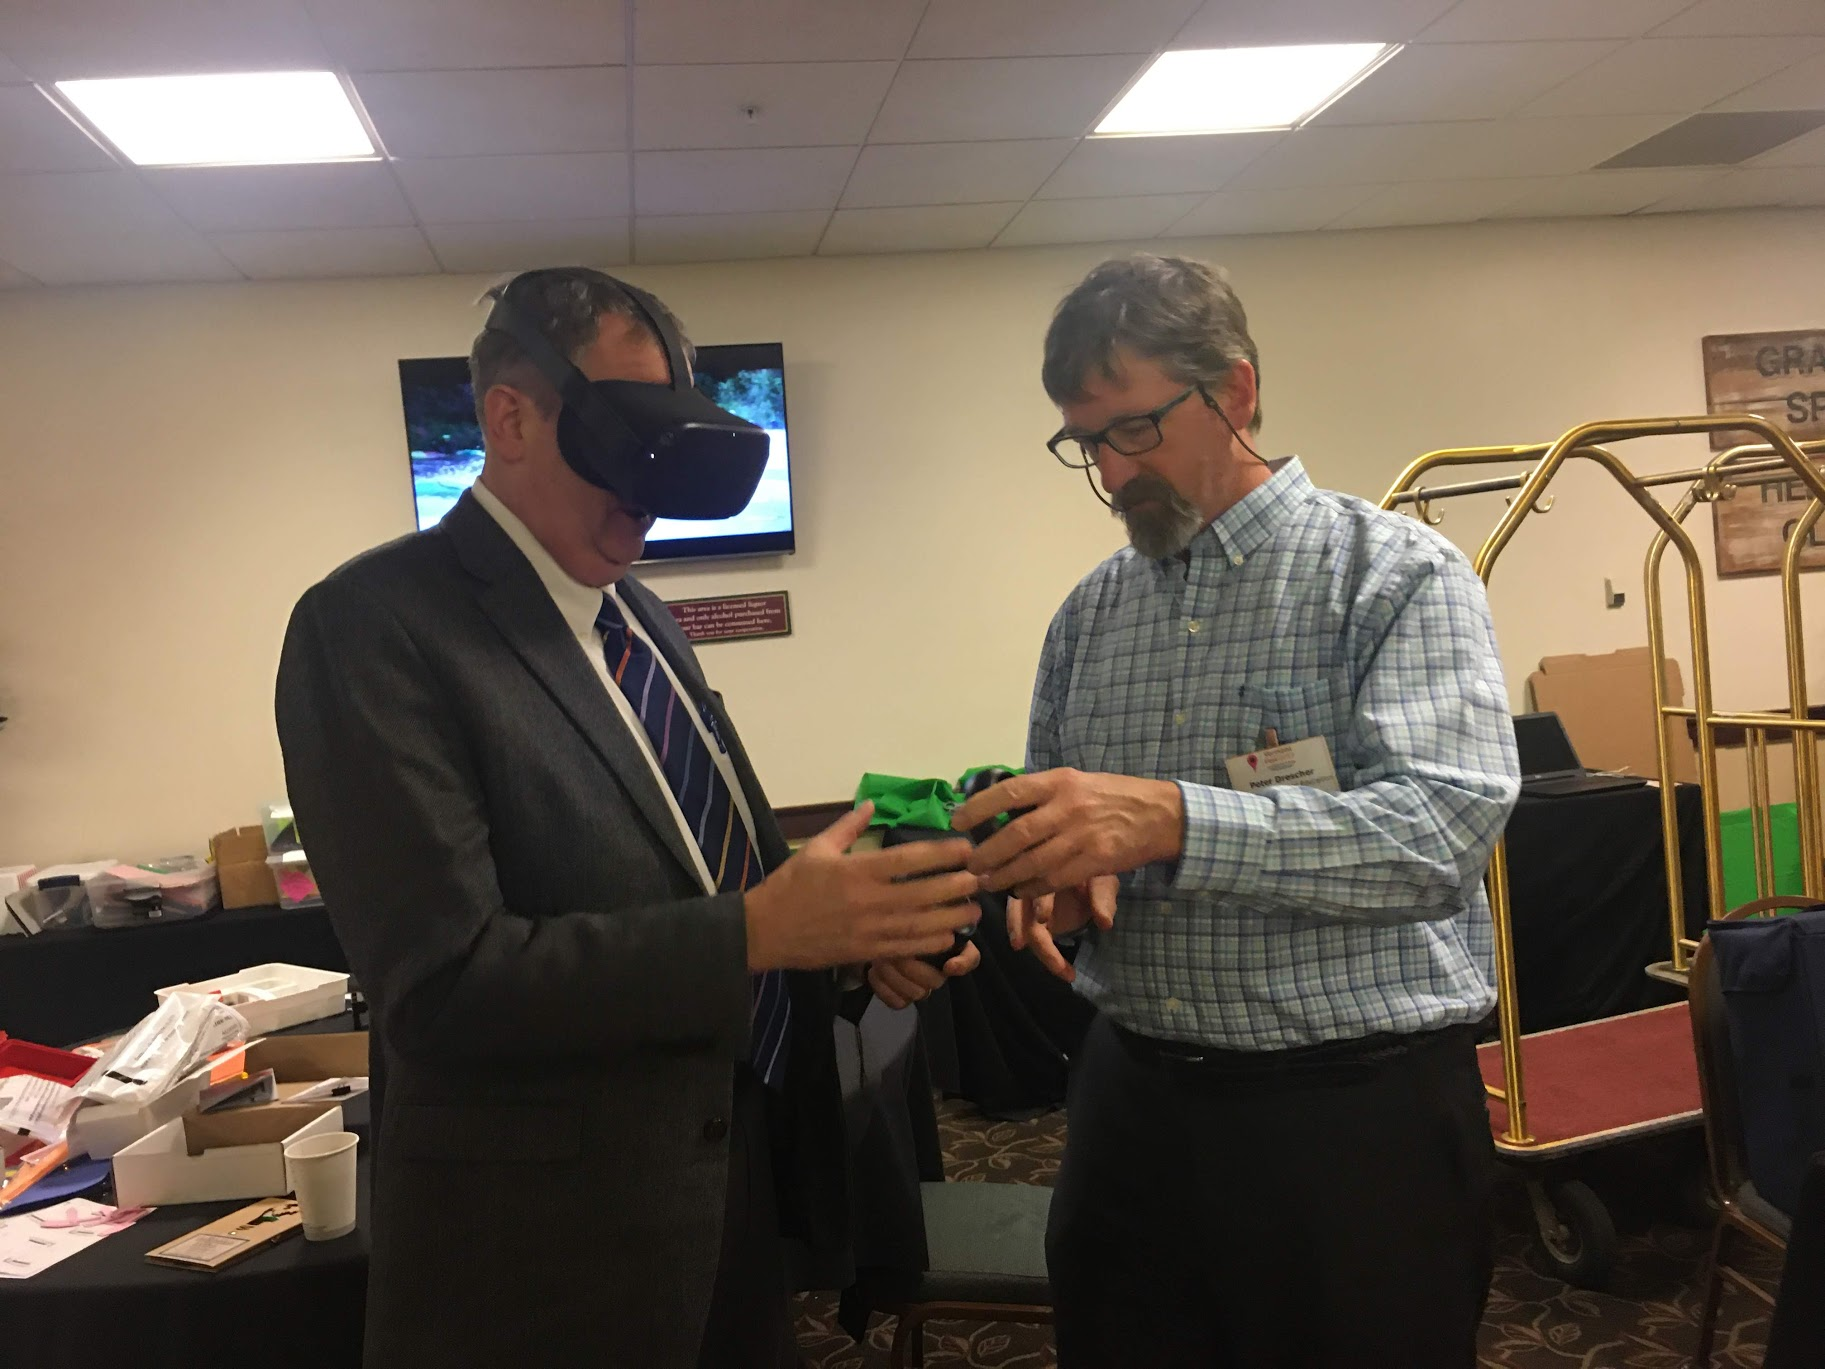 Attendee with VR Headset